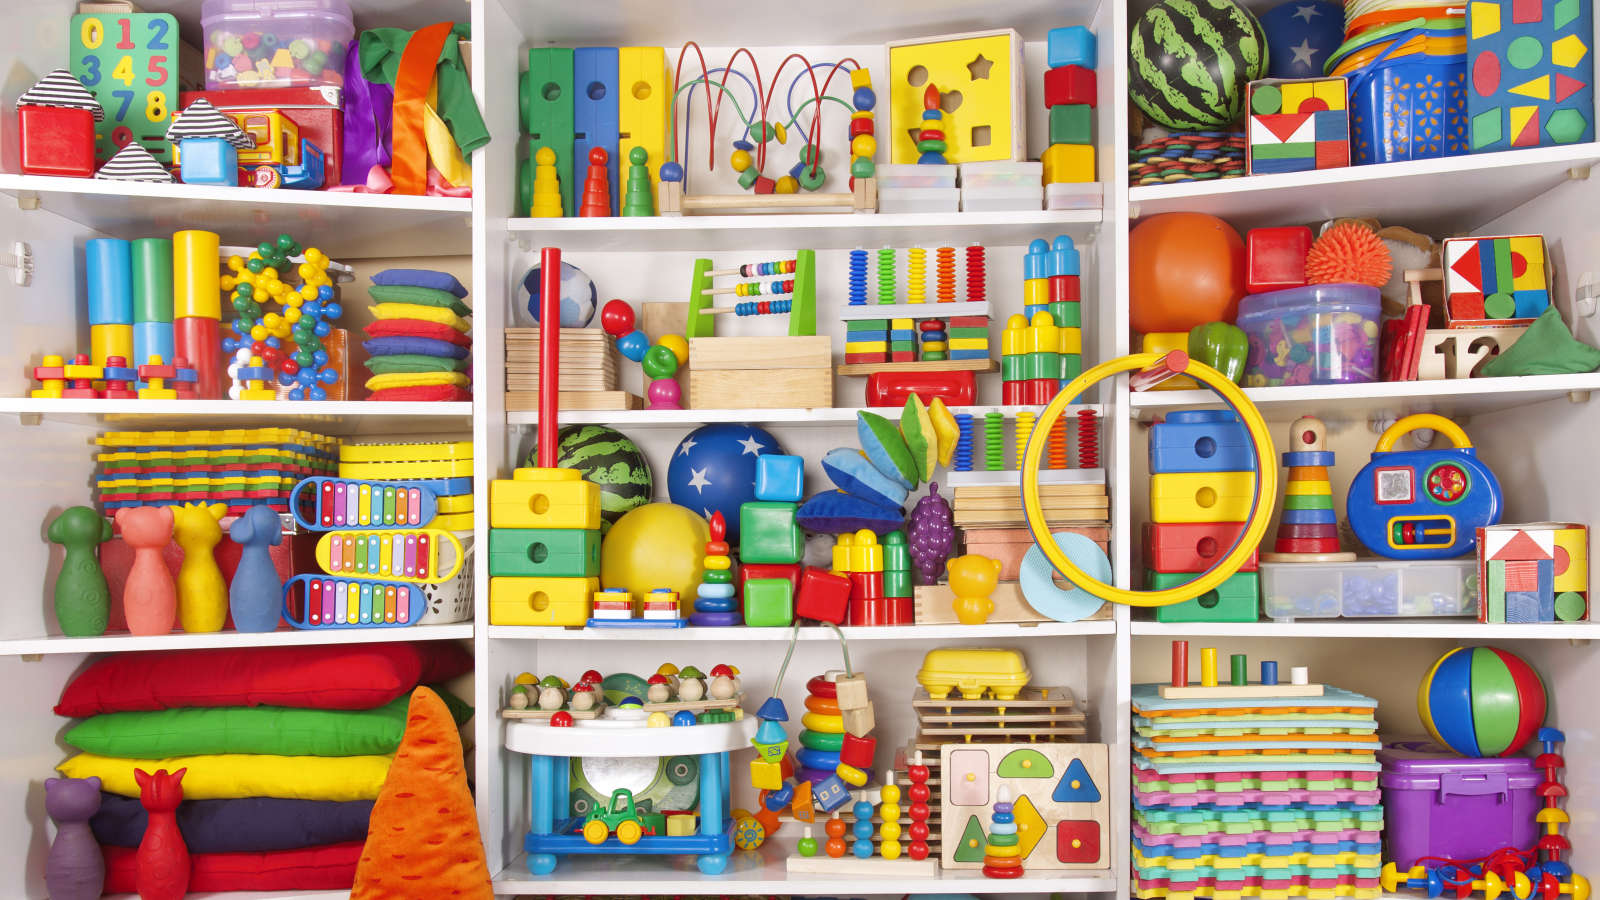 7 Ways to Store an Overwhelming Amount of Toys